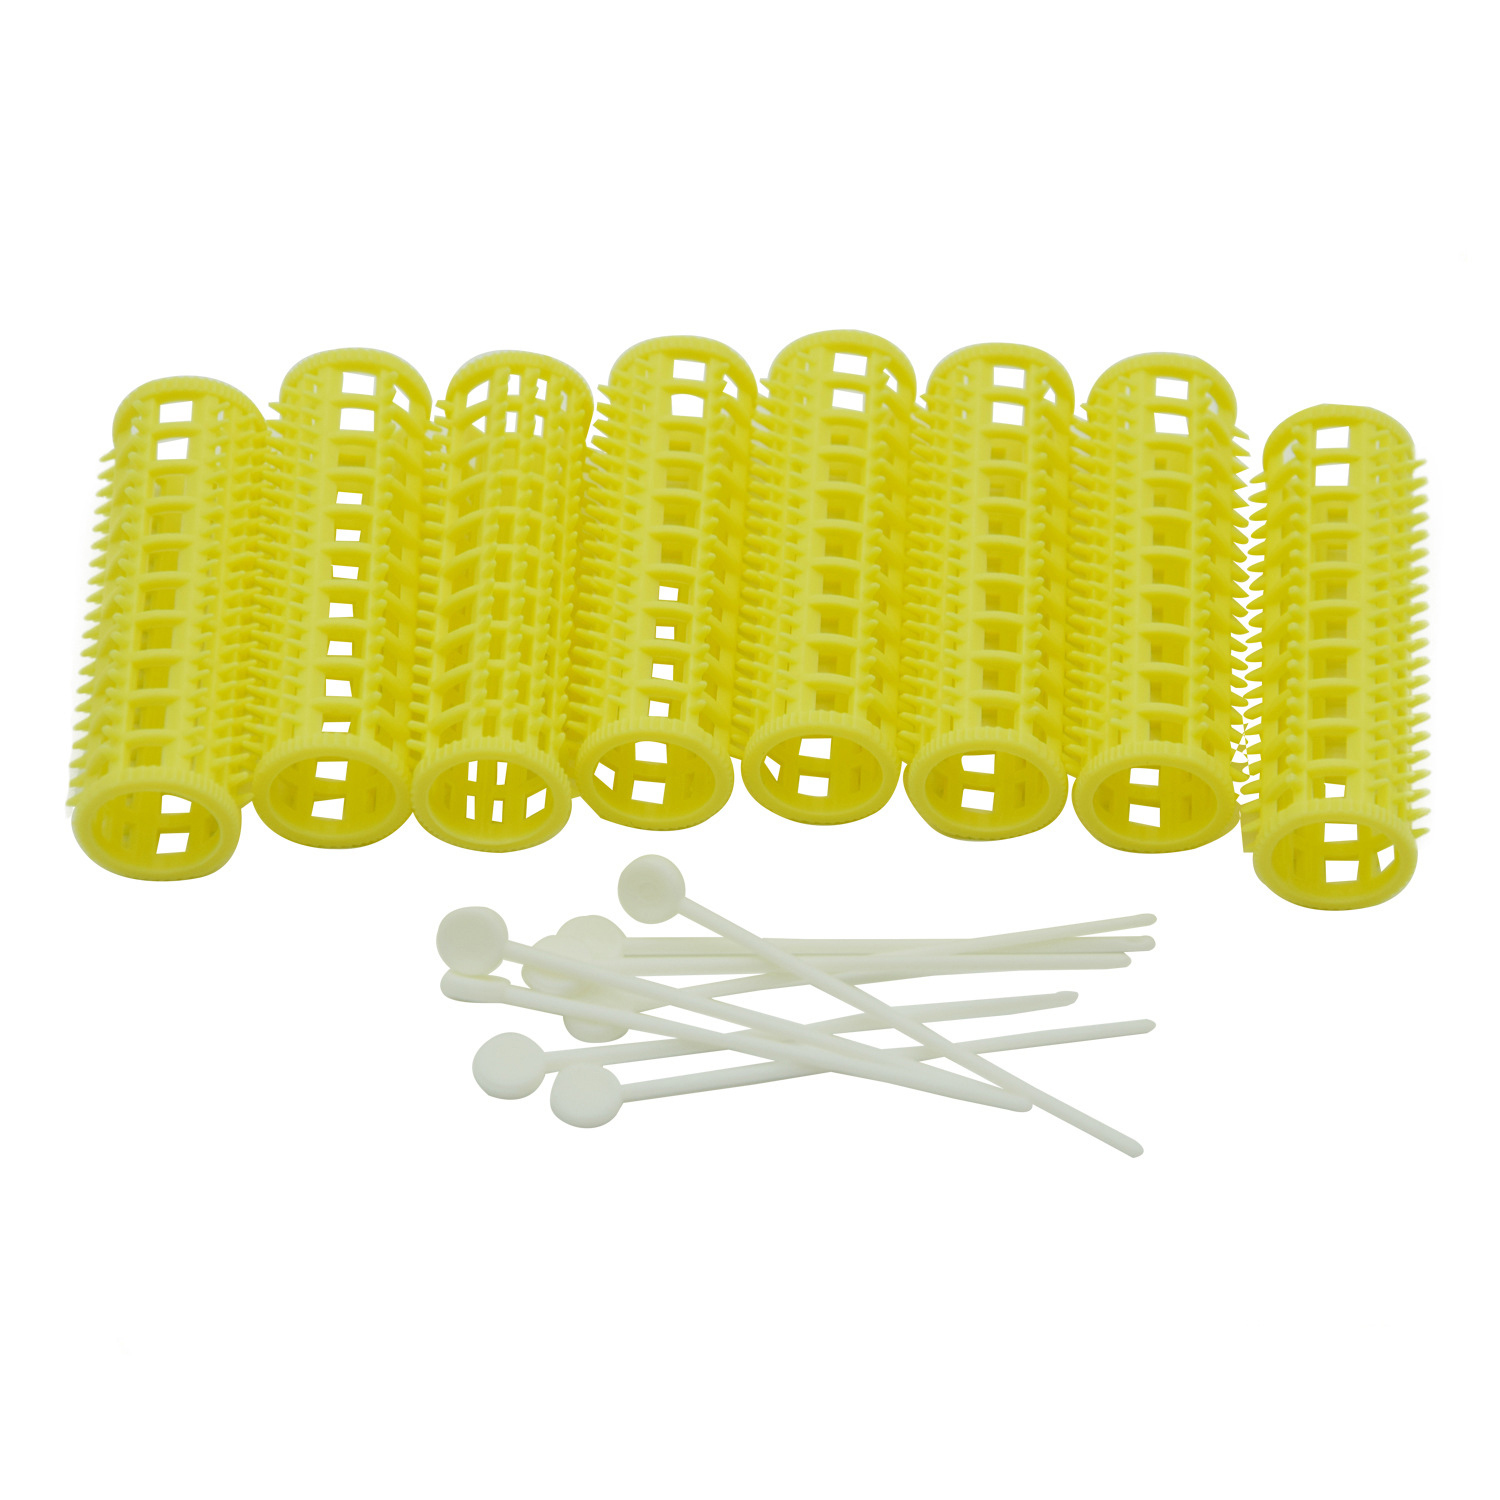 15mm Plastic Tooth Hair Roller with Fixed Pins Teeth Bars for Air Bang Curling Rods Curlers Hairdresser Styling U1195